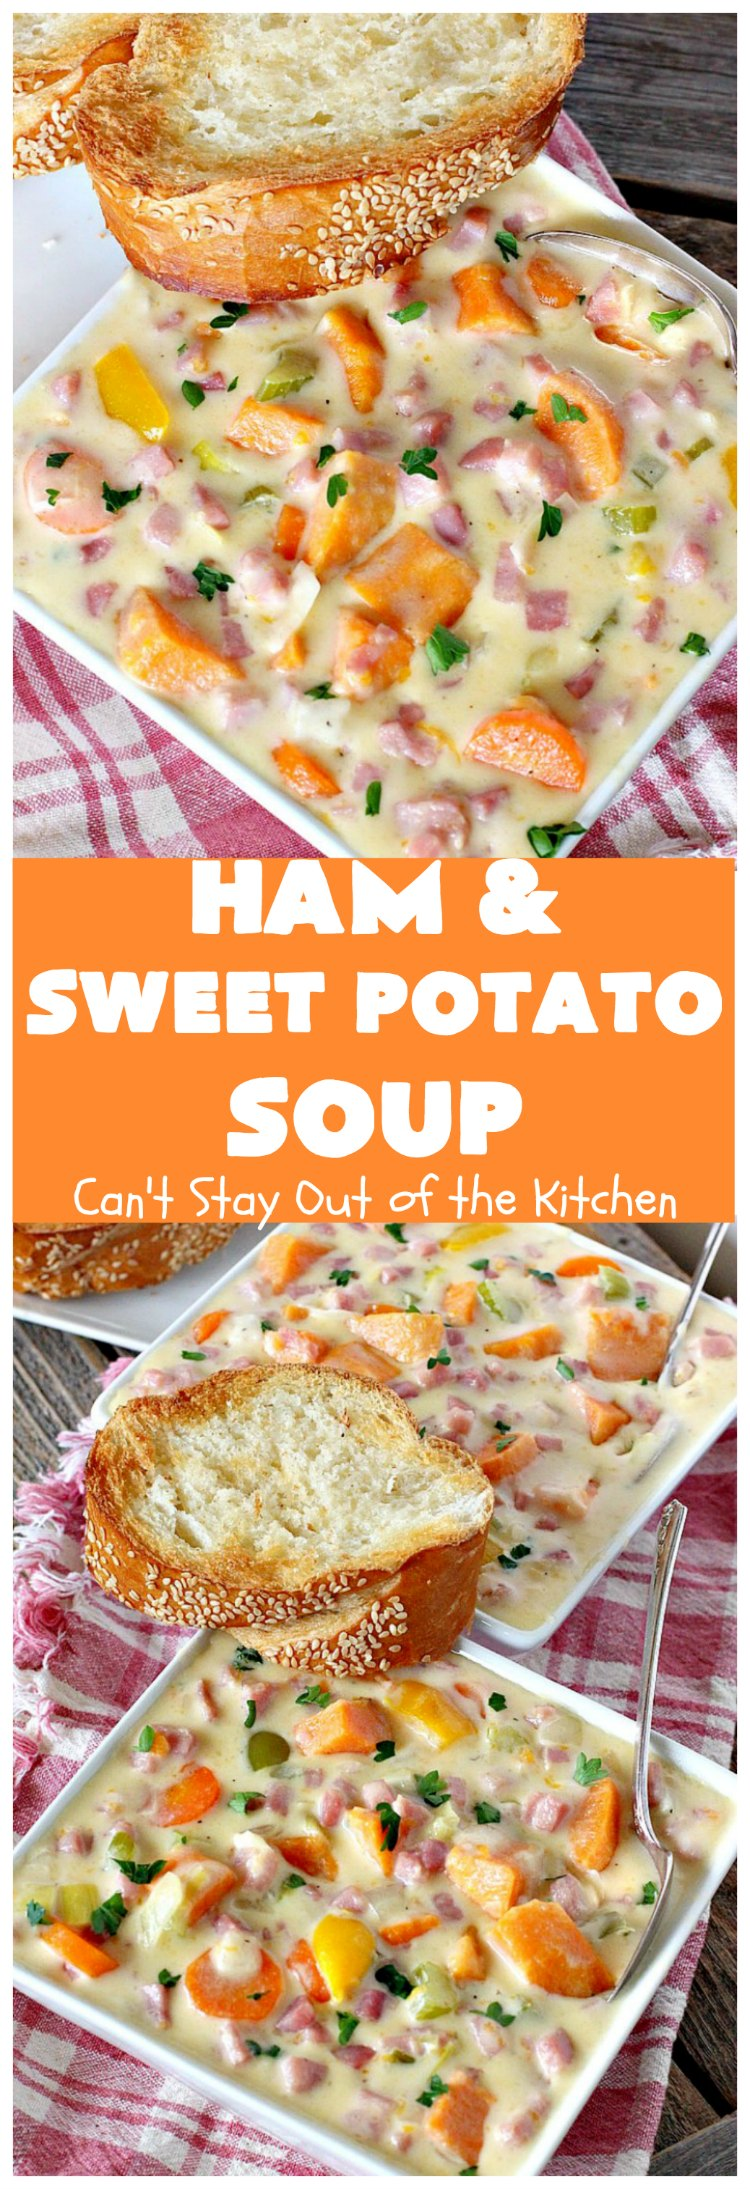 Ham and Sweet Potato Soup | Can't Stay Out of the Kitchen